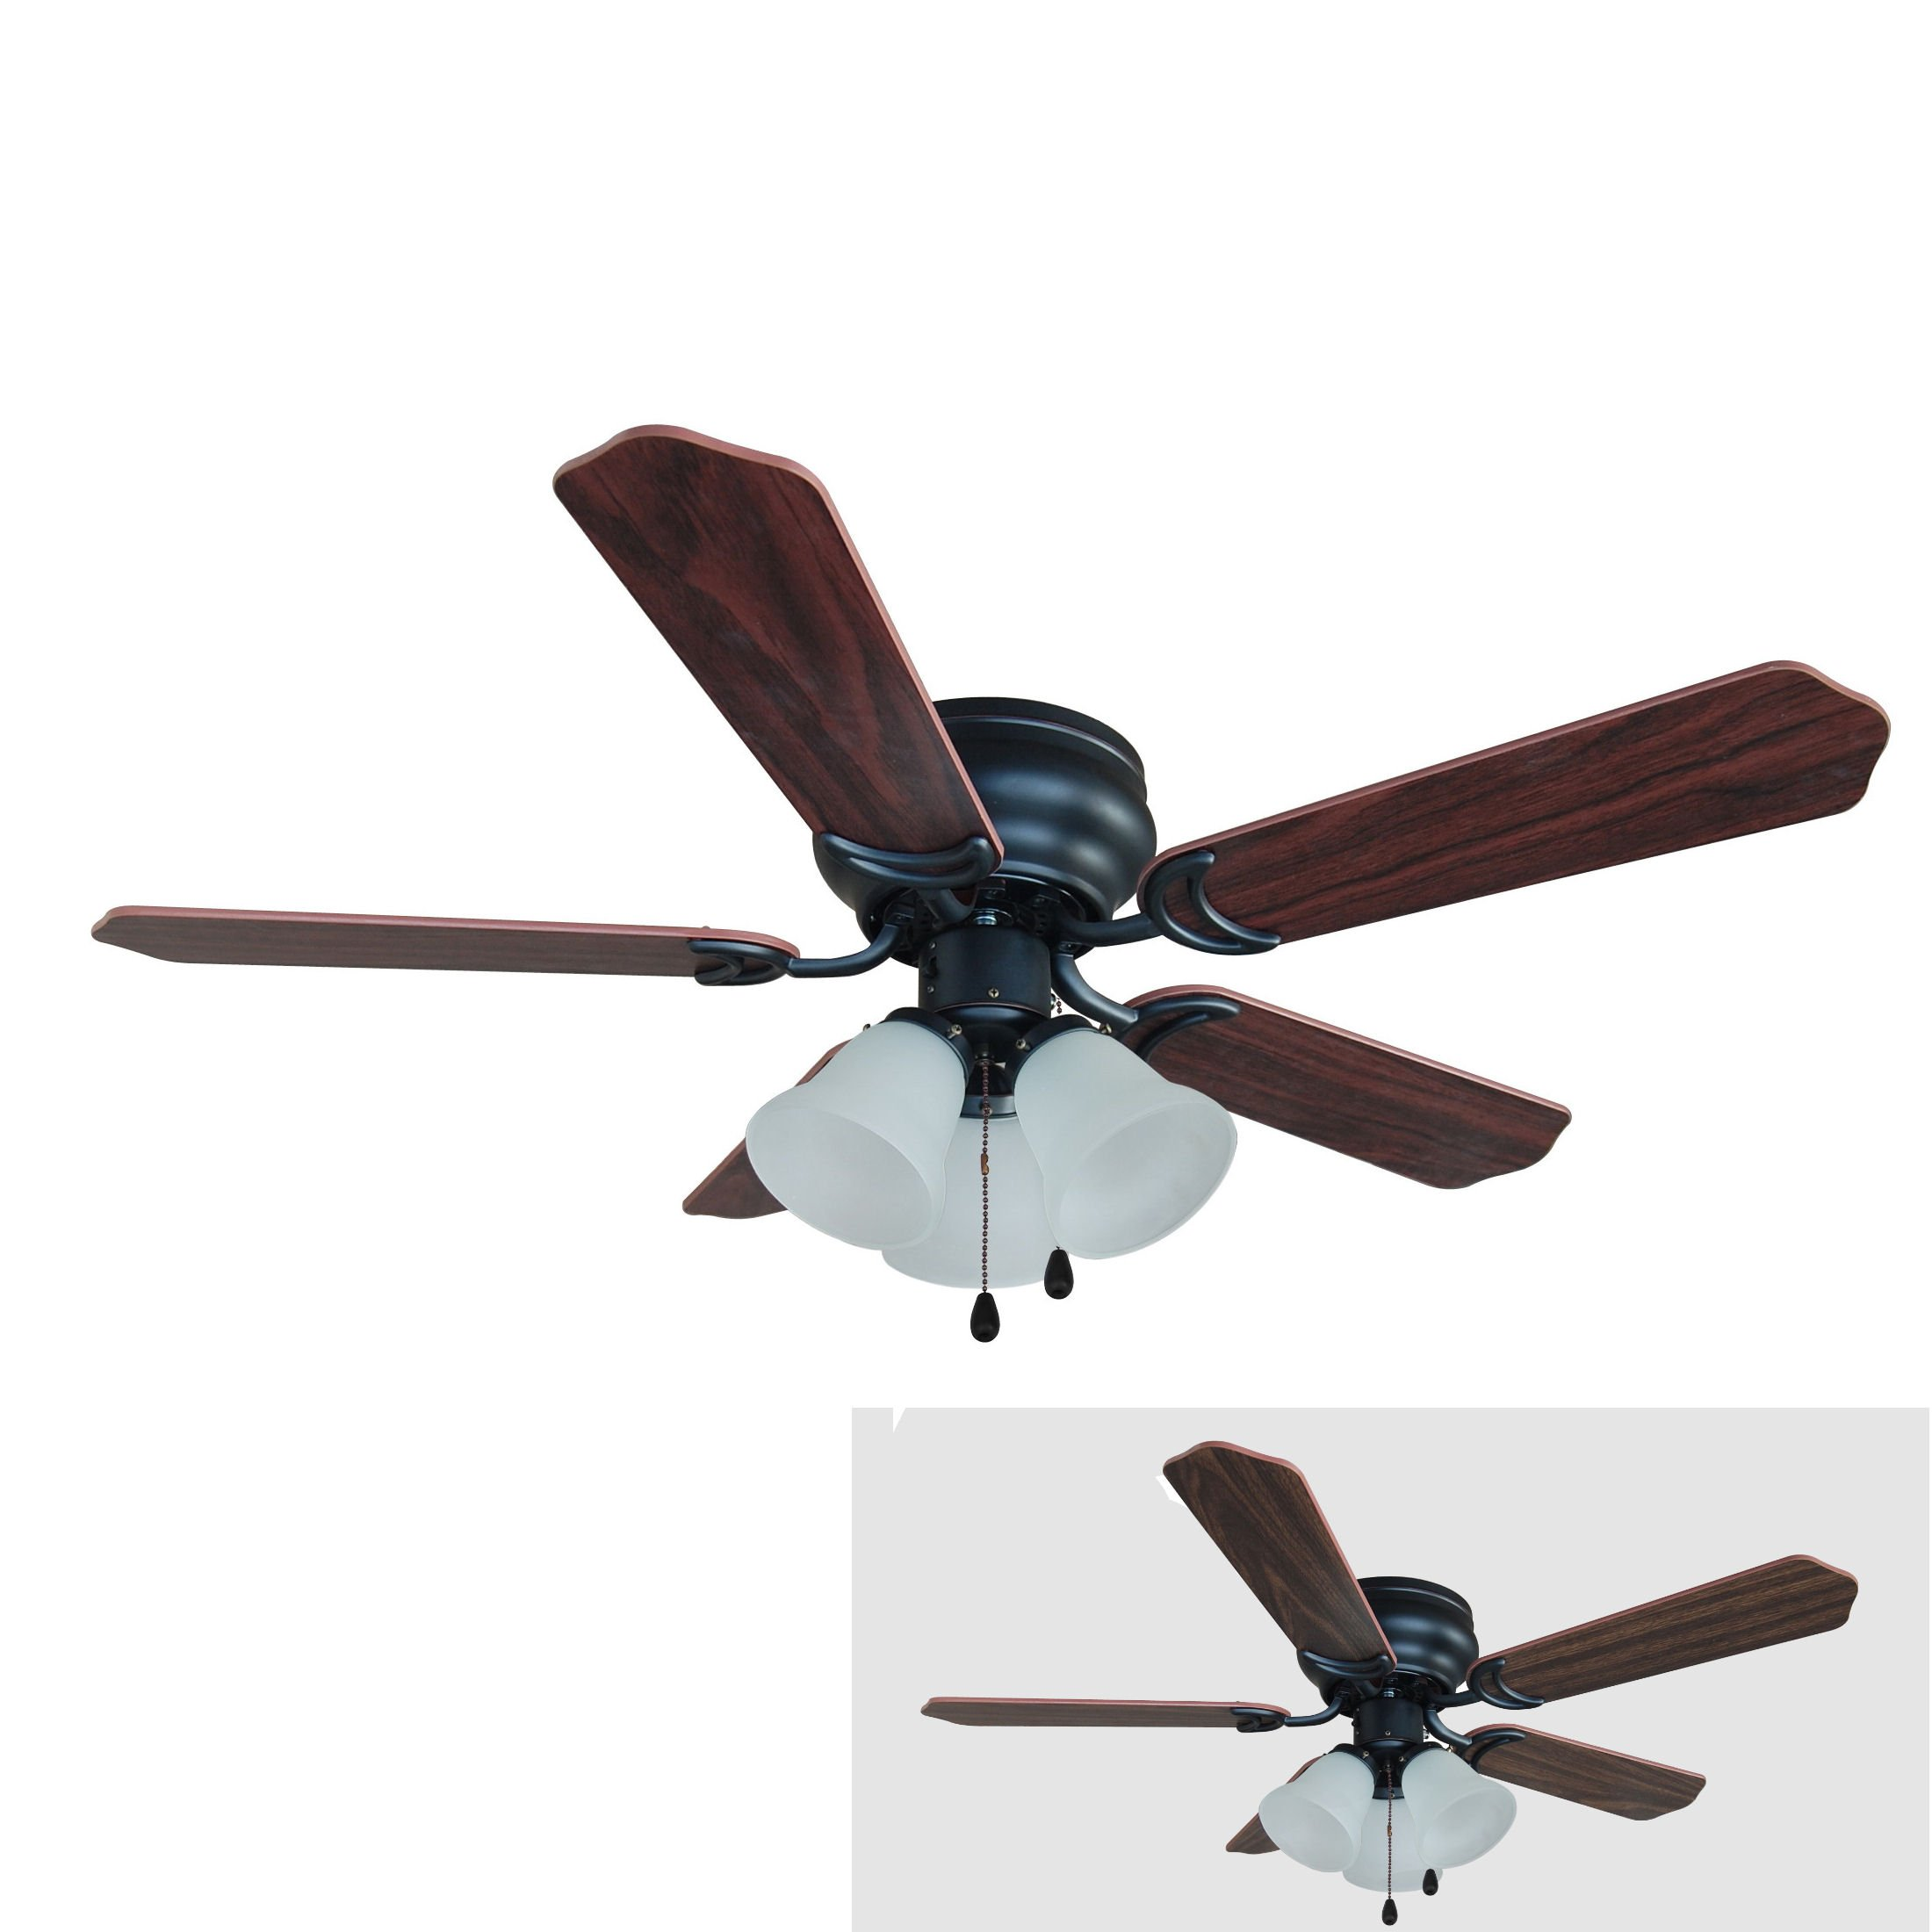 Hardware House 17-5067 Oil Rubbed Bronze 42-Inch Flush Mount Ceiling Fan with Light Kit, Cherry or Walnut Blades